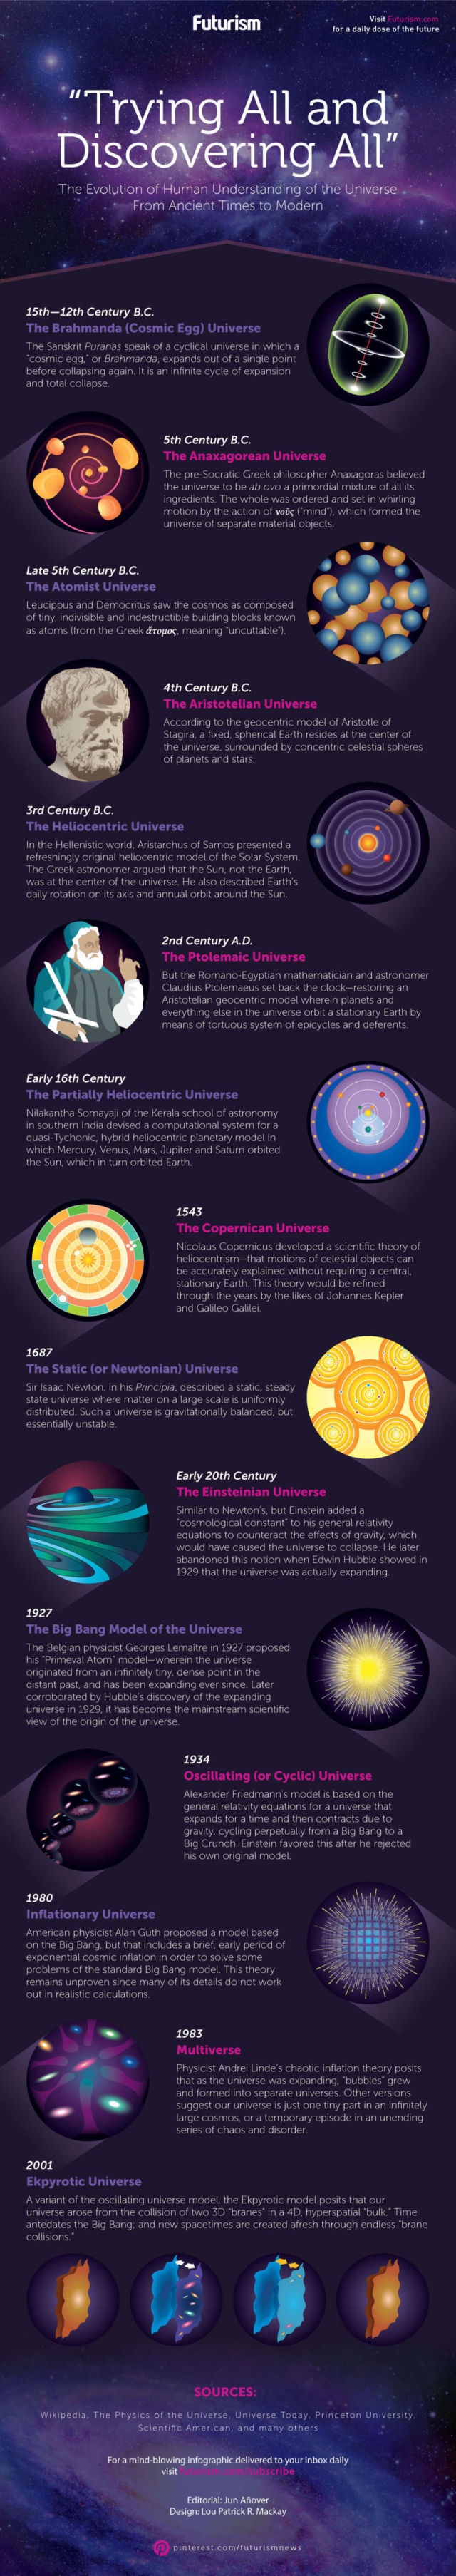 The Evolution of Human Understanding of the Universe